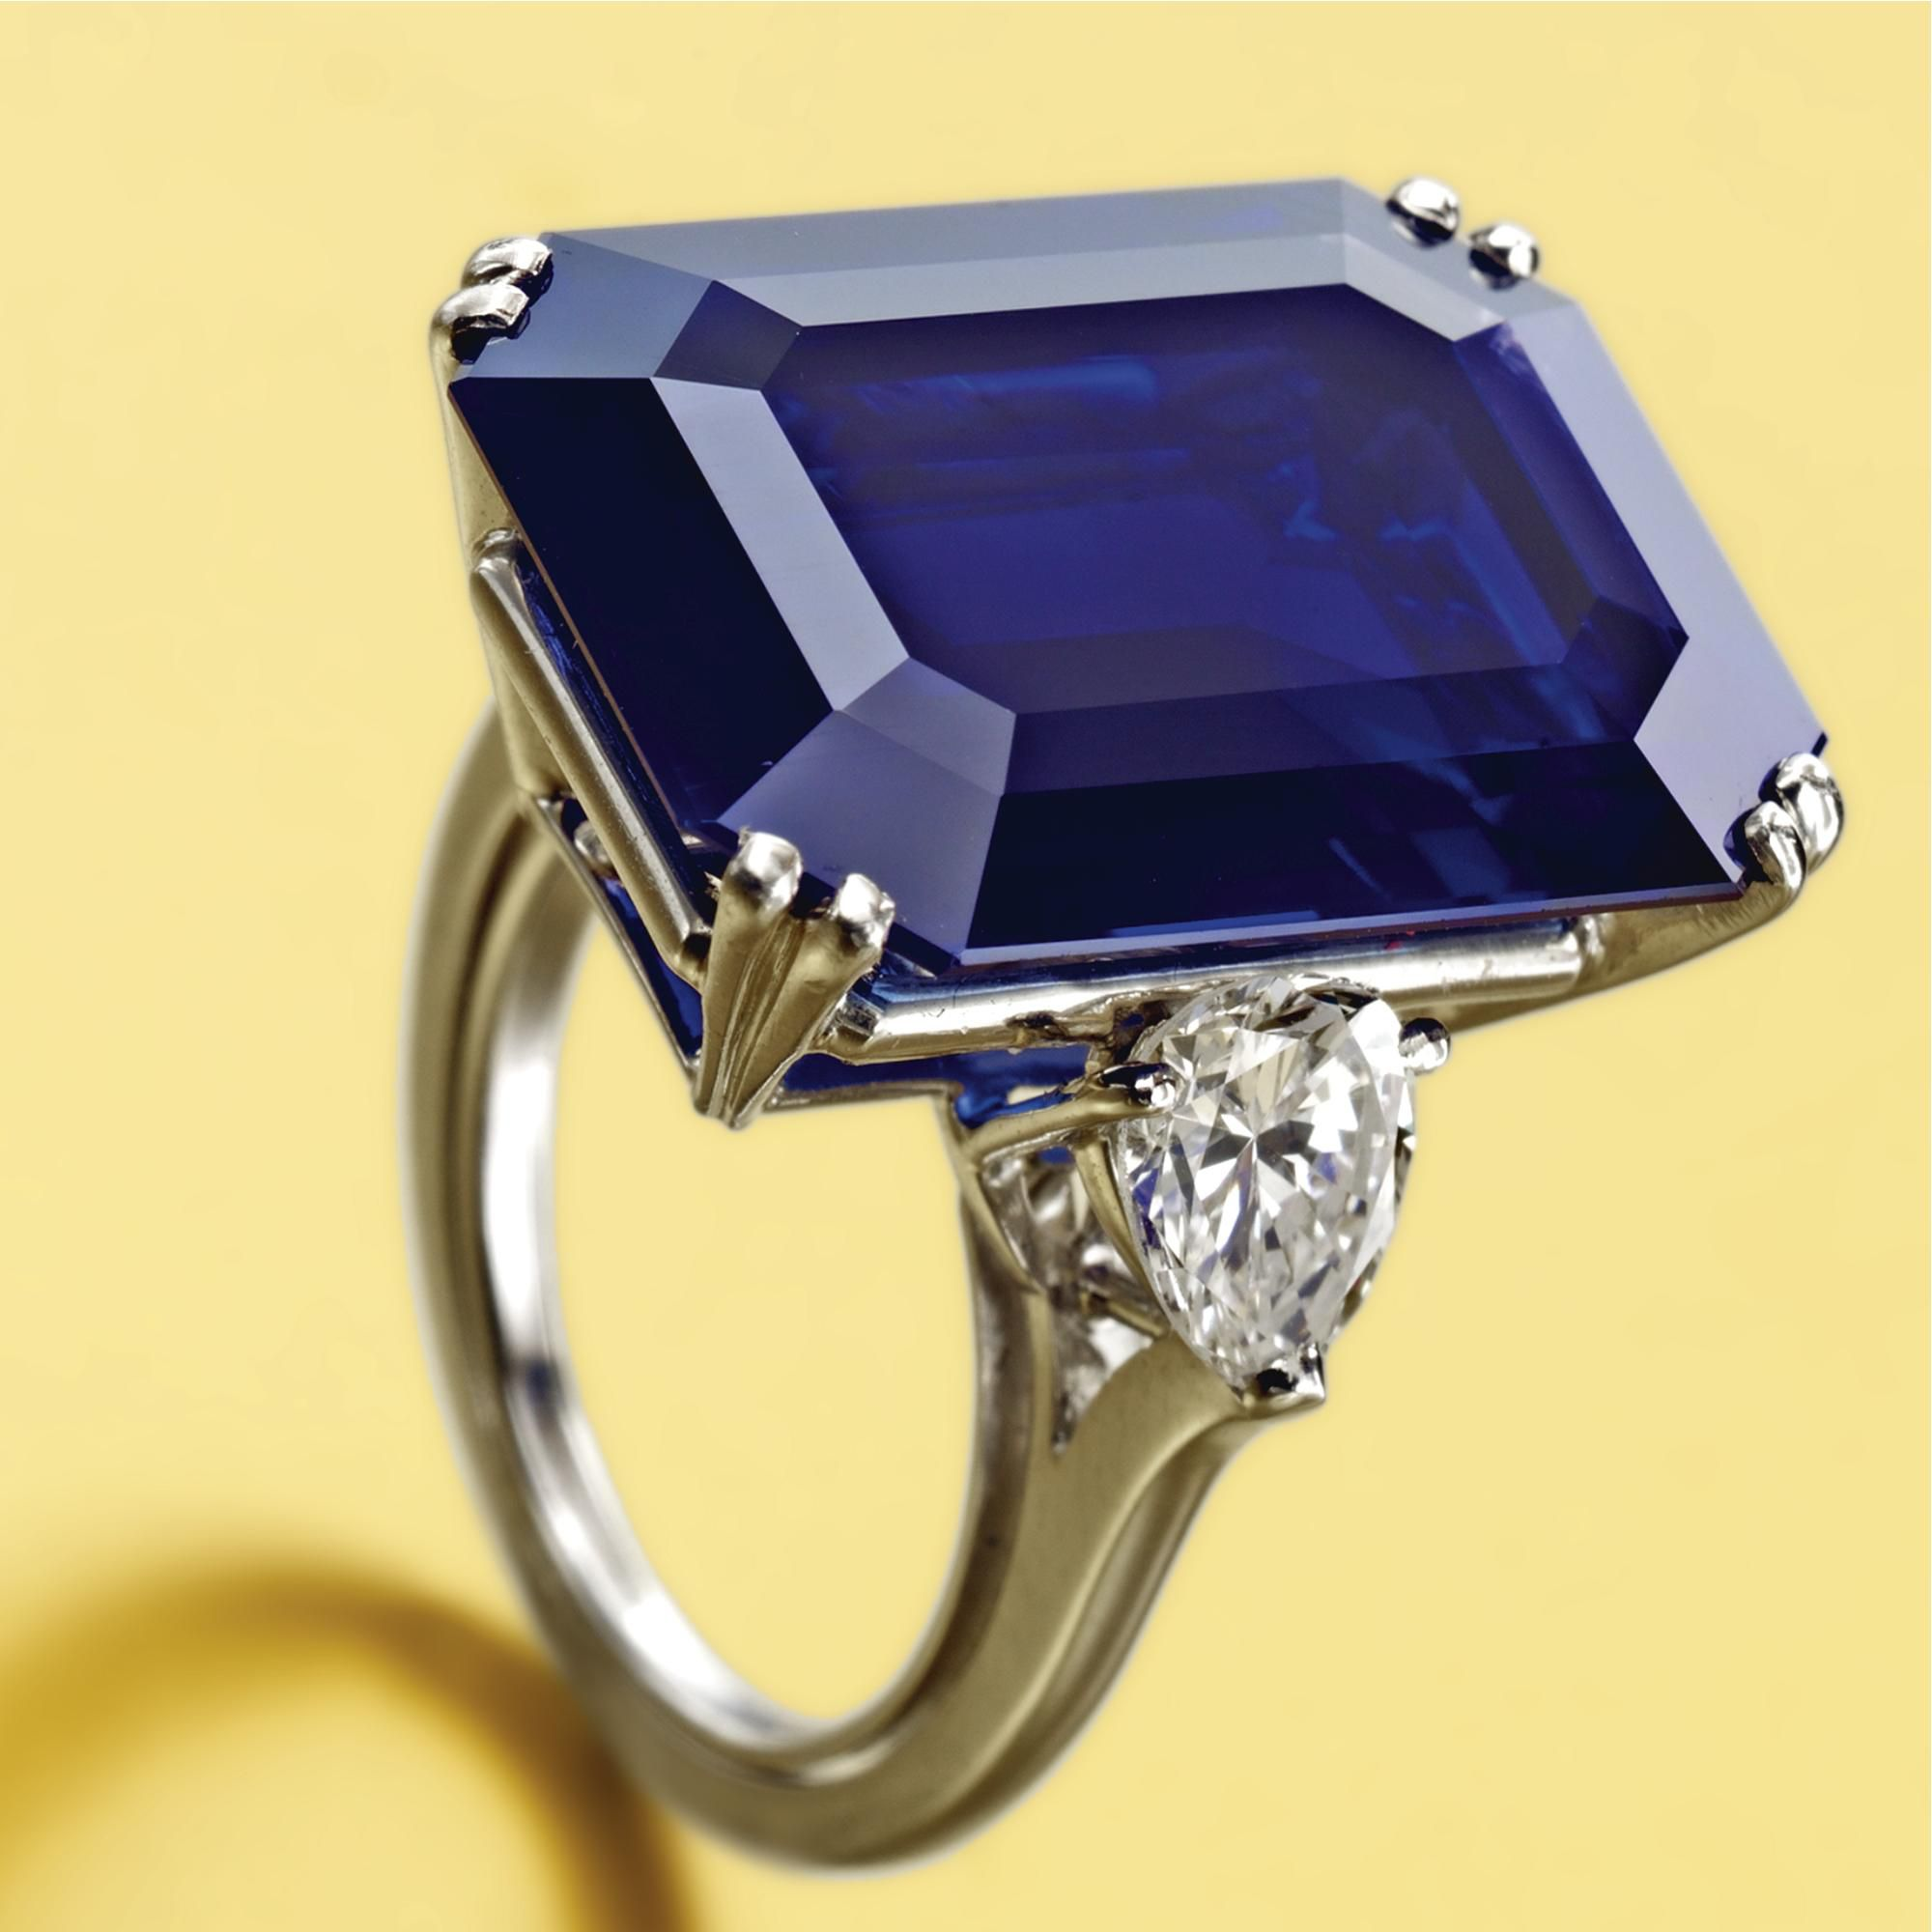 Sapphire and Diamond ring. The emerald-cut sapphire weighing 25.25 carats, flanked by 2 pear-shaped diamonds, mounted in platinum, size 5, signed Van Cleef & Arpels, maker's marks, French assay marks. Van Cleef & Arpels, Paris | Lot | Sotheby's